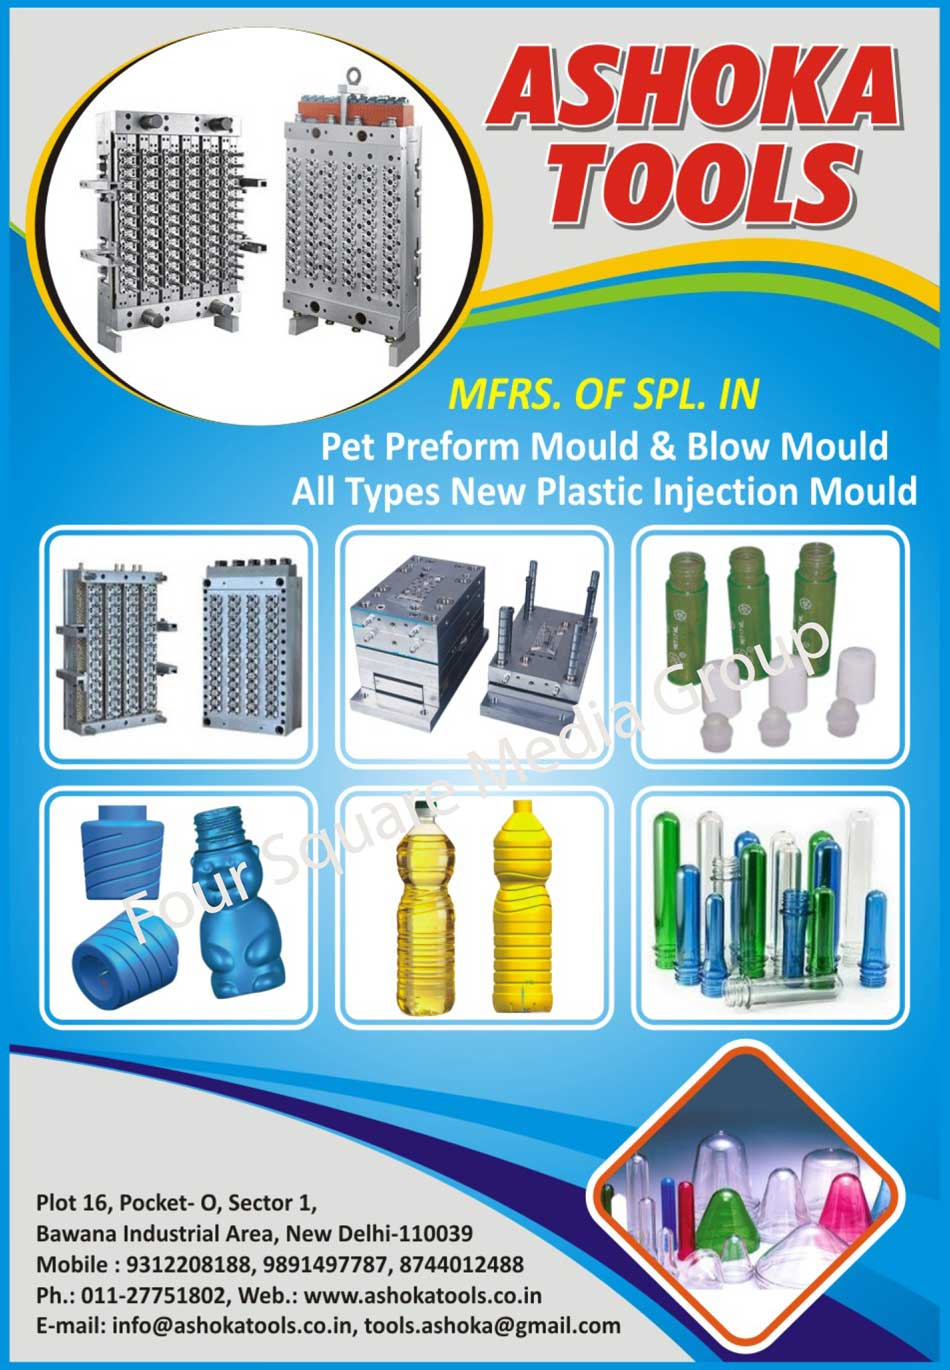 Pet Preform Moulds, Blow Moulds, Pet Preform Molds, Blow Molds, Plastic Injection Moulds, Plastic Injection Molds